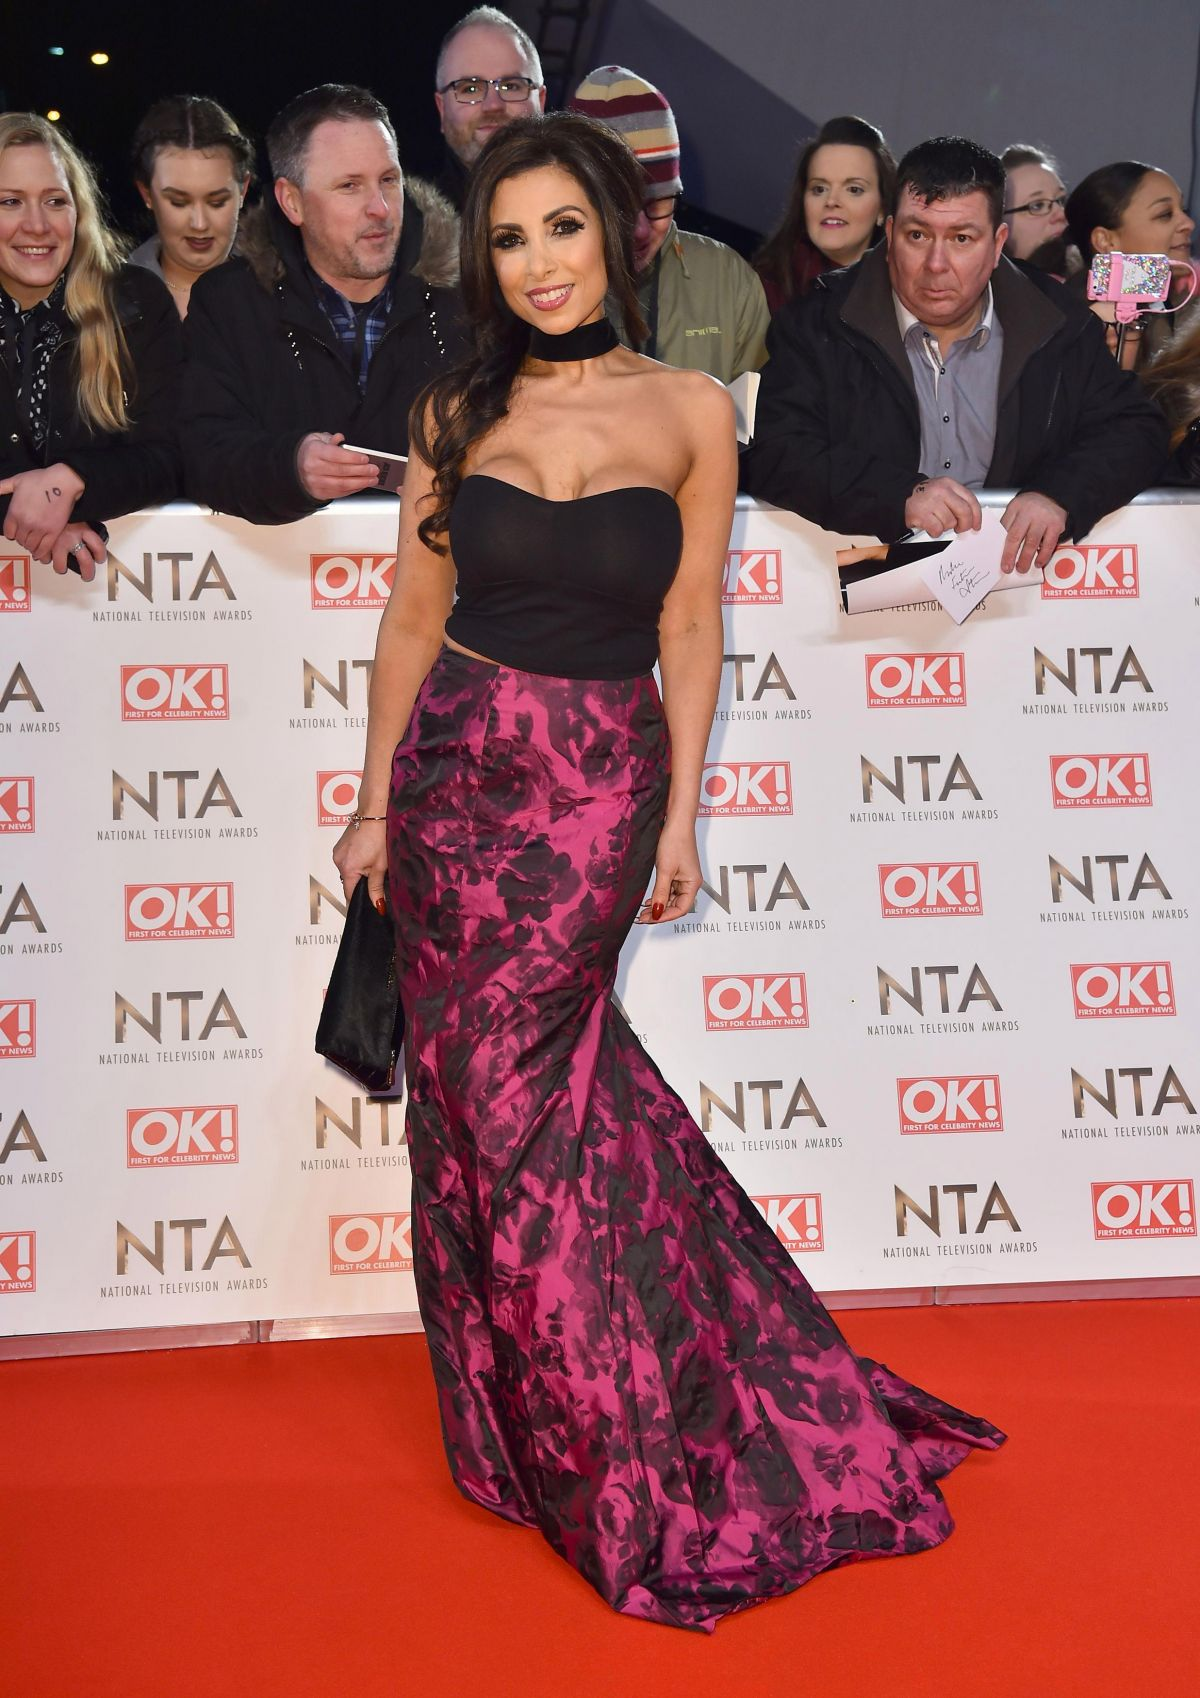 FRANCINE LEWIS at National Television Awards in London 01/25/2017